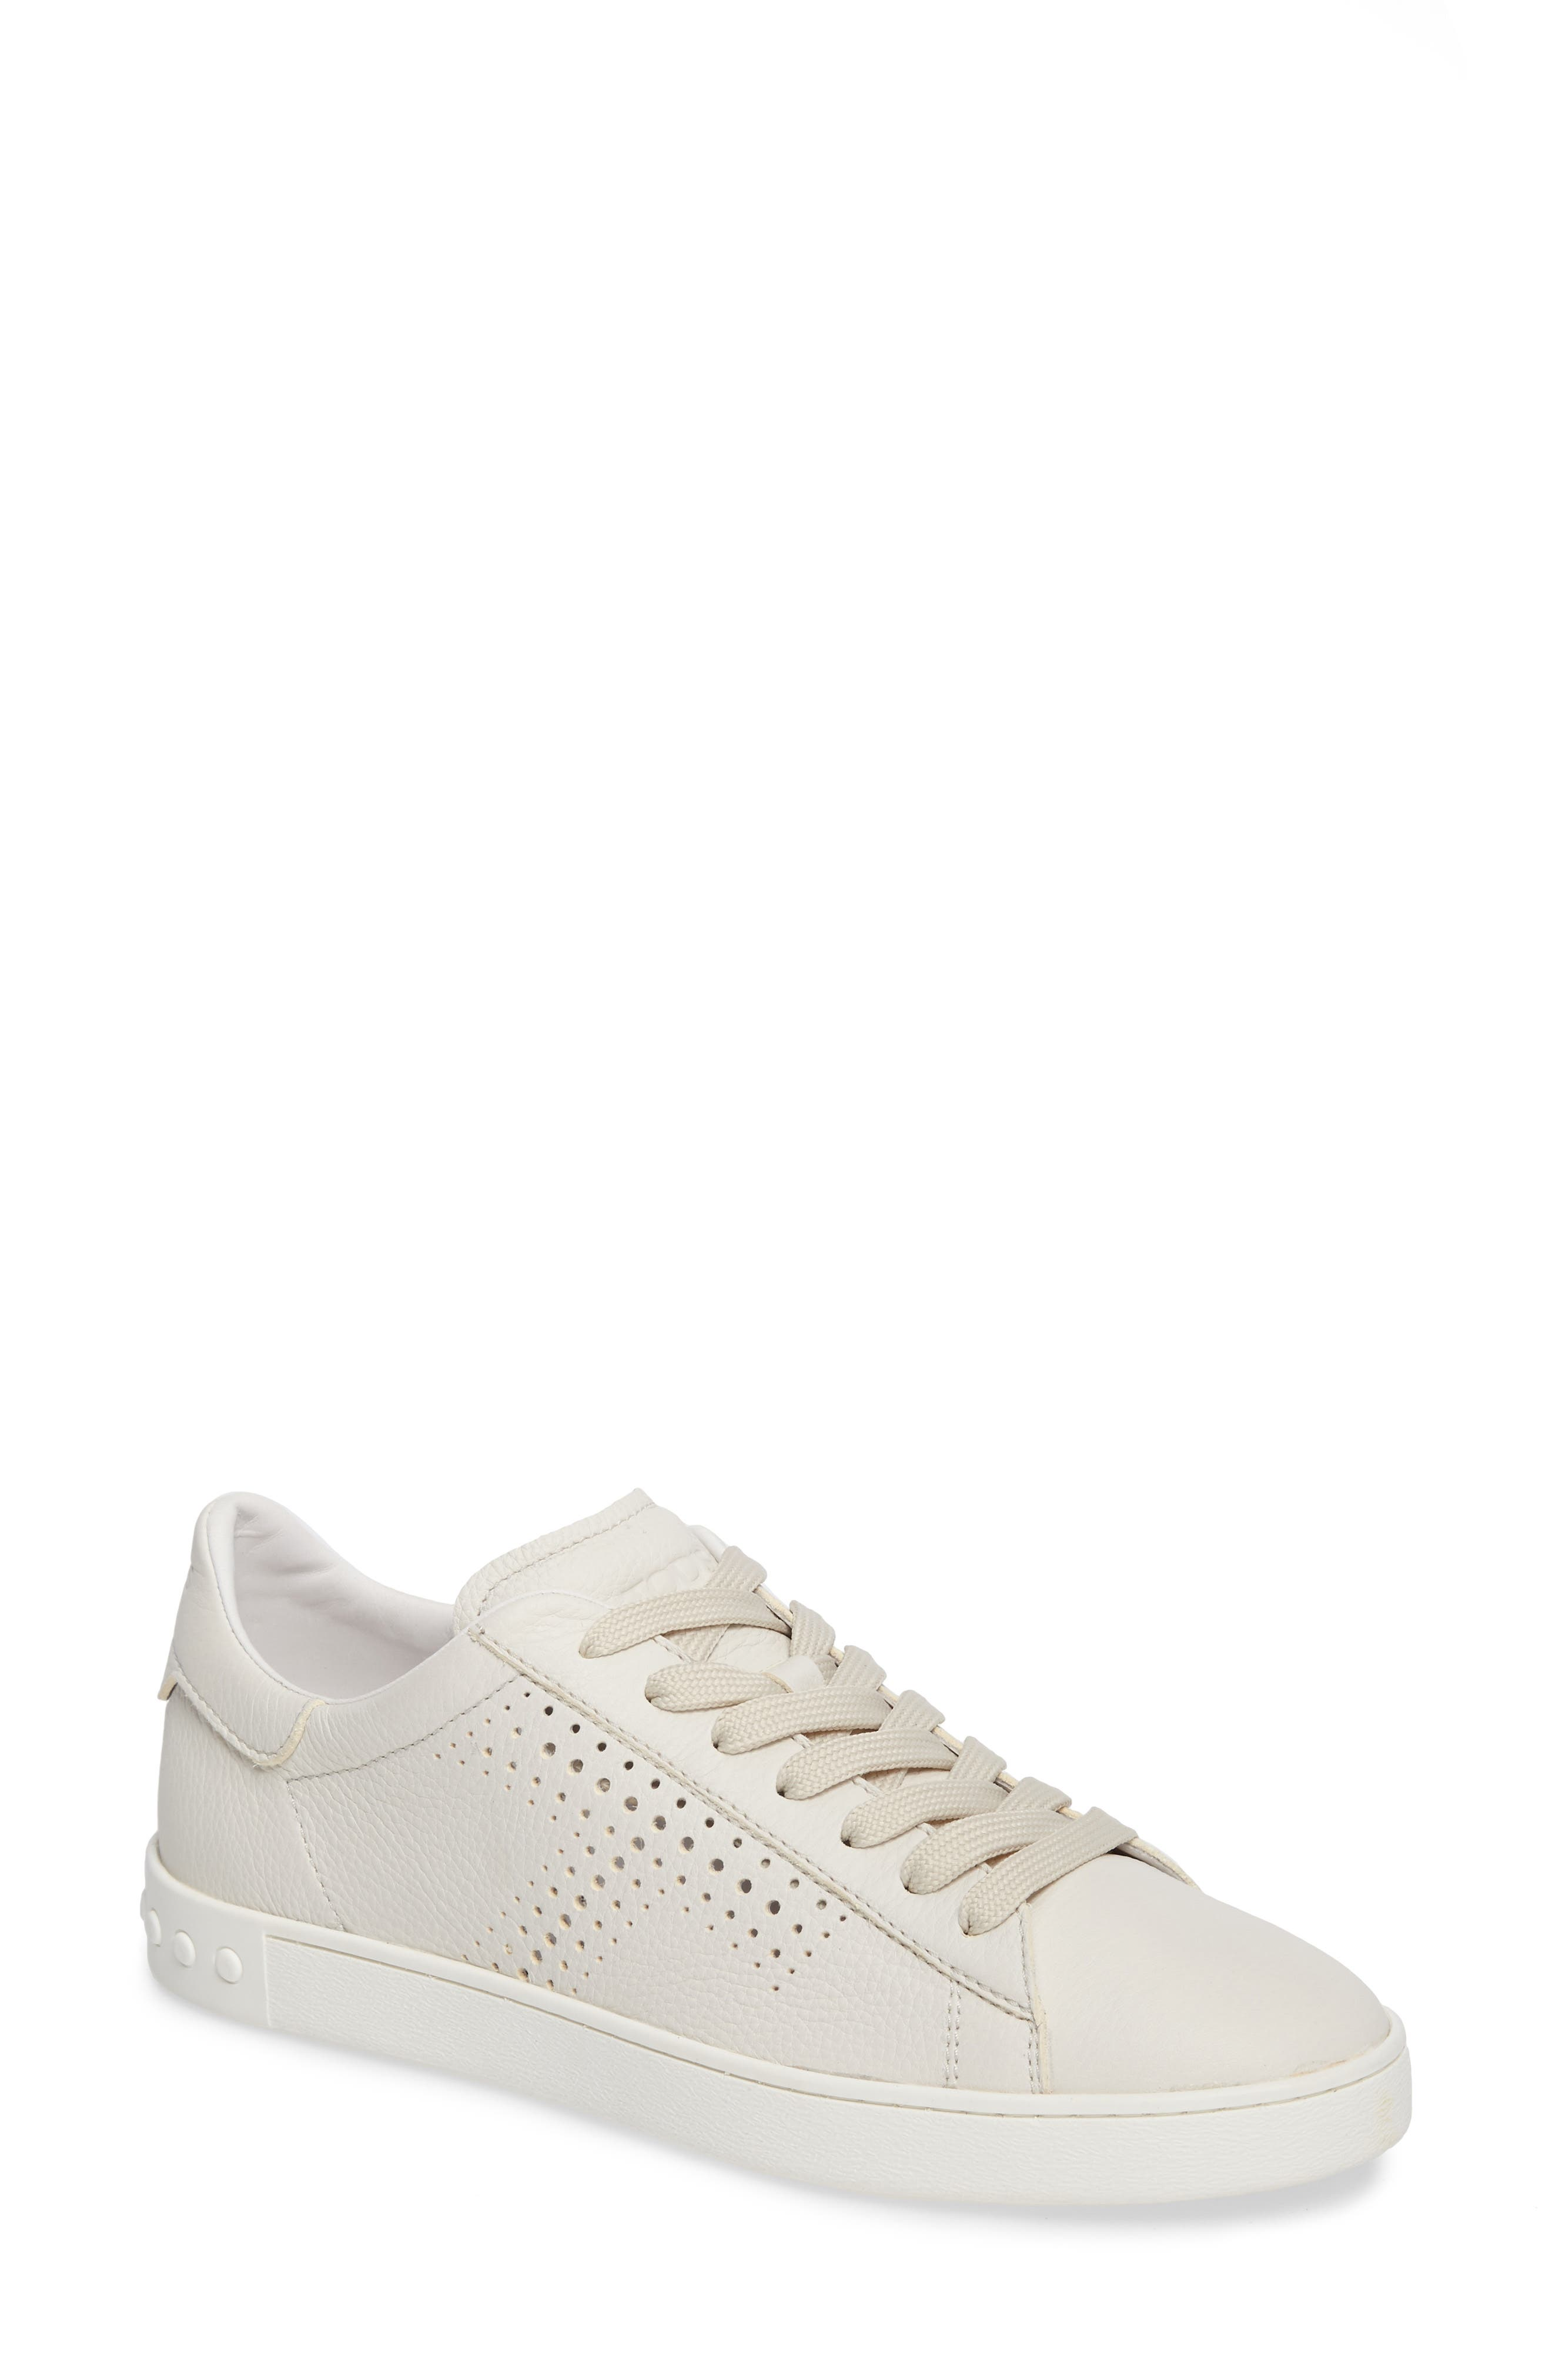 Tods Perforated T Sneaker (Women)